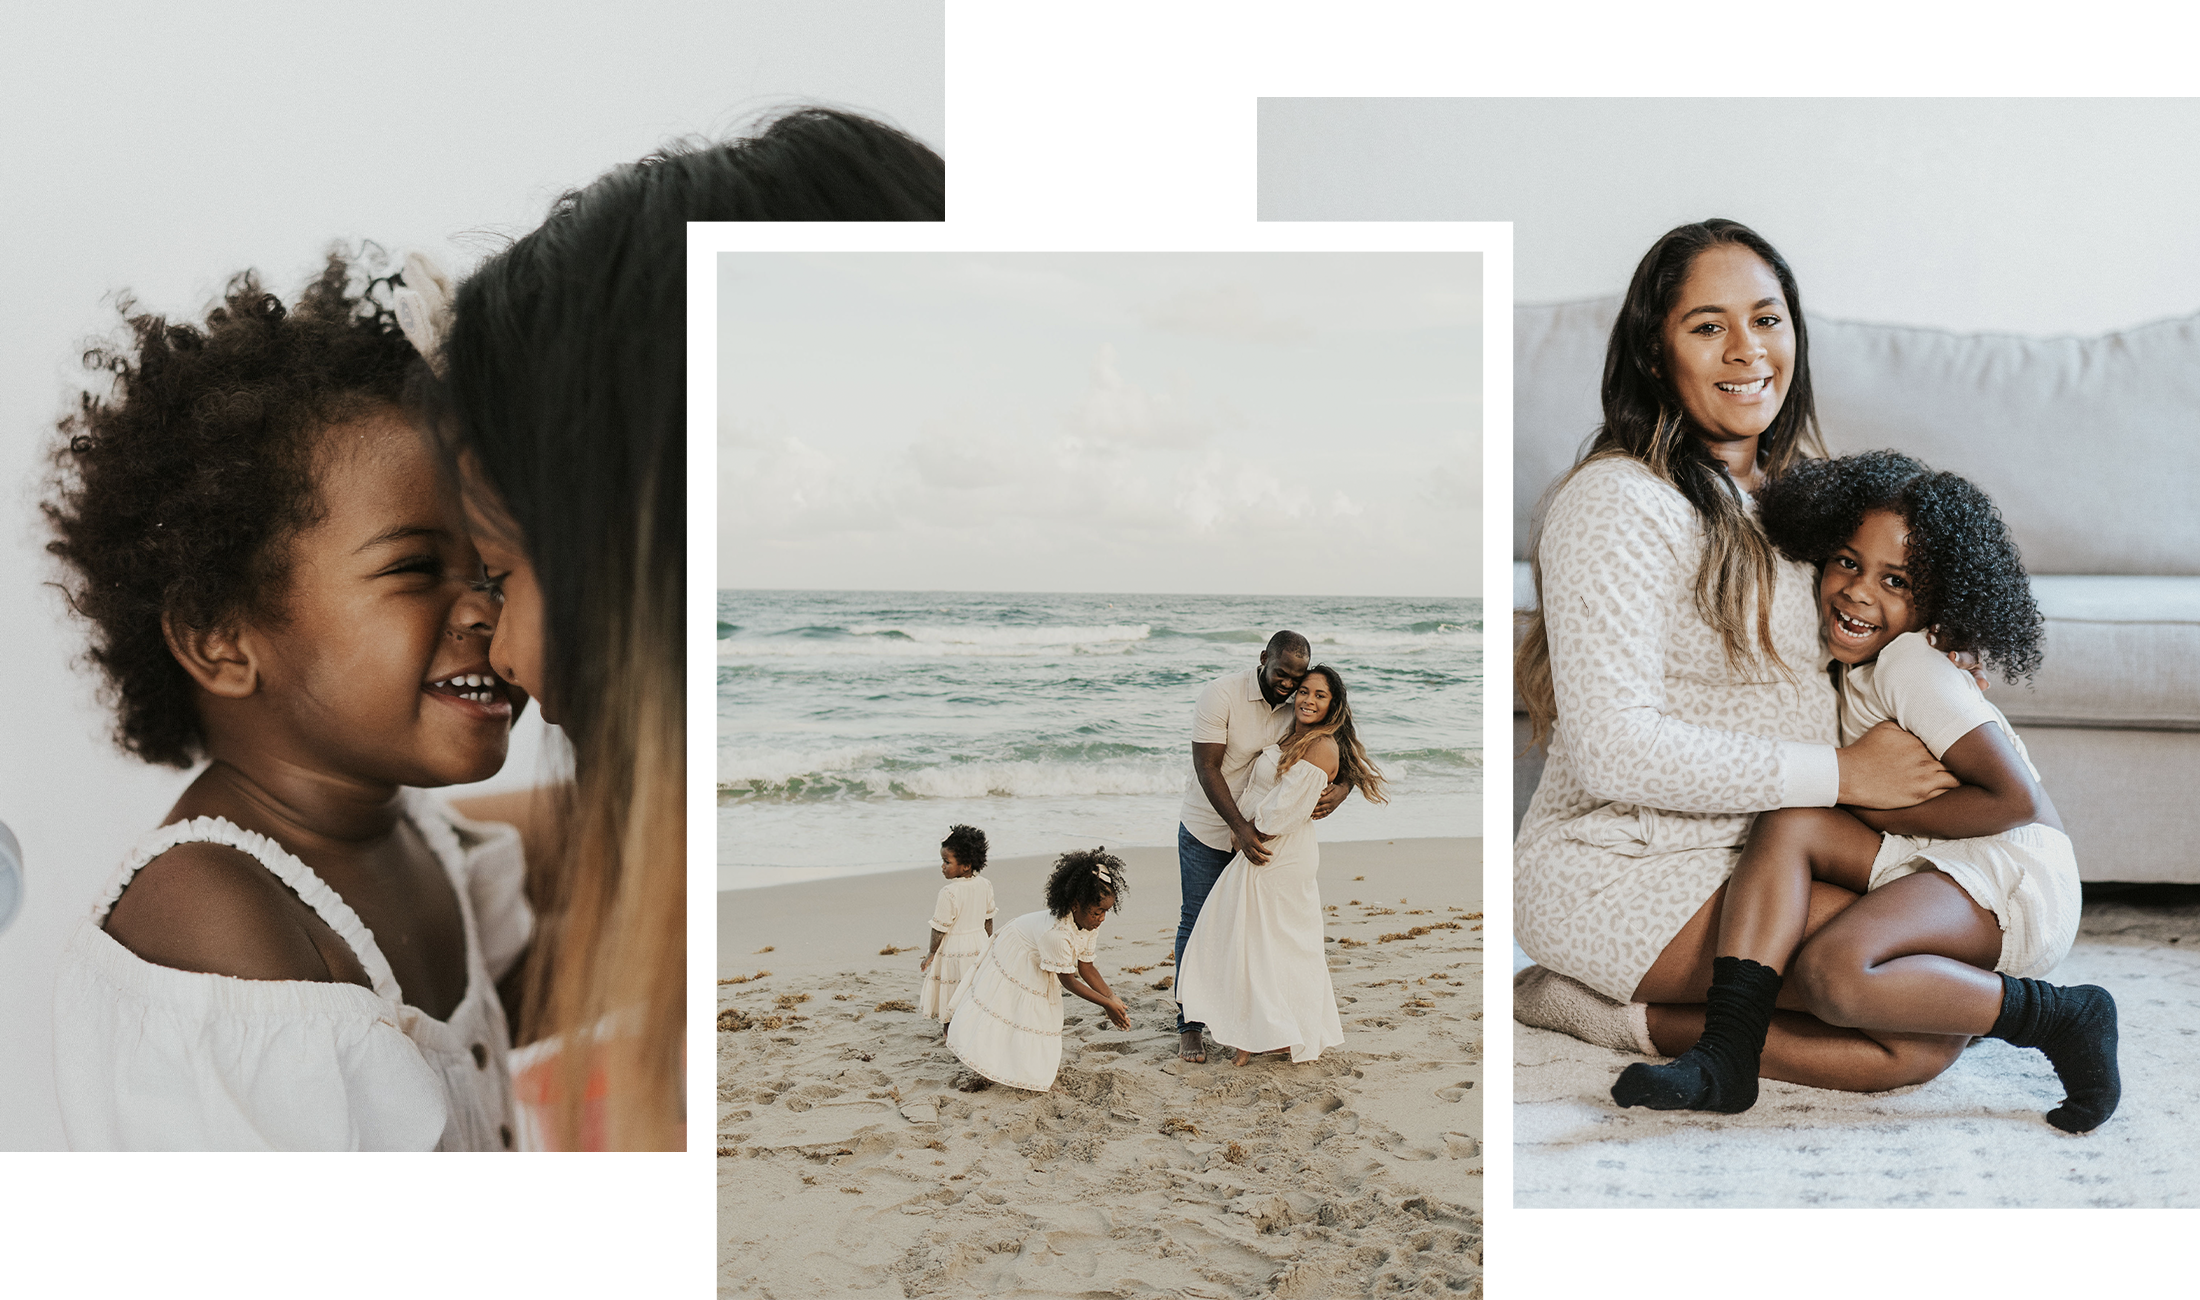 Mommyhood Joy Blog is a Miami, FL Family, Travel, and Lifestyle Blog doing a lifestyle home photoshoot